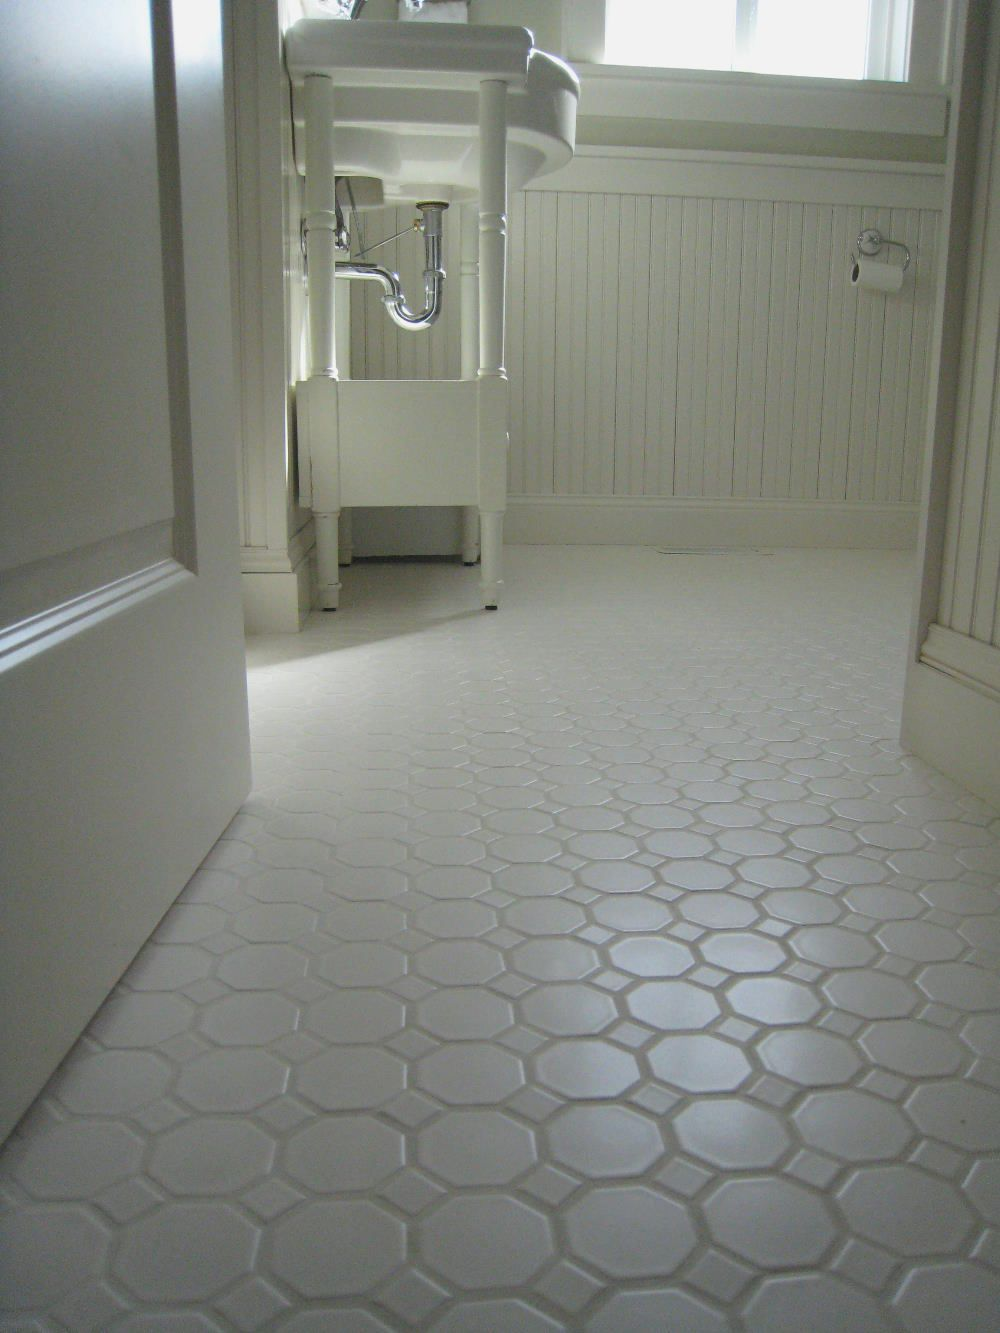 Non Slip Bathroom Floor Tiles More Picture Non Slip Bathroom Floor Tiles  Please Visit Www. Part 69